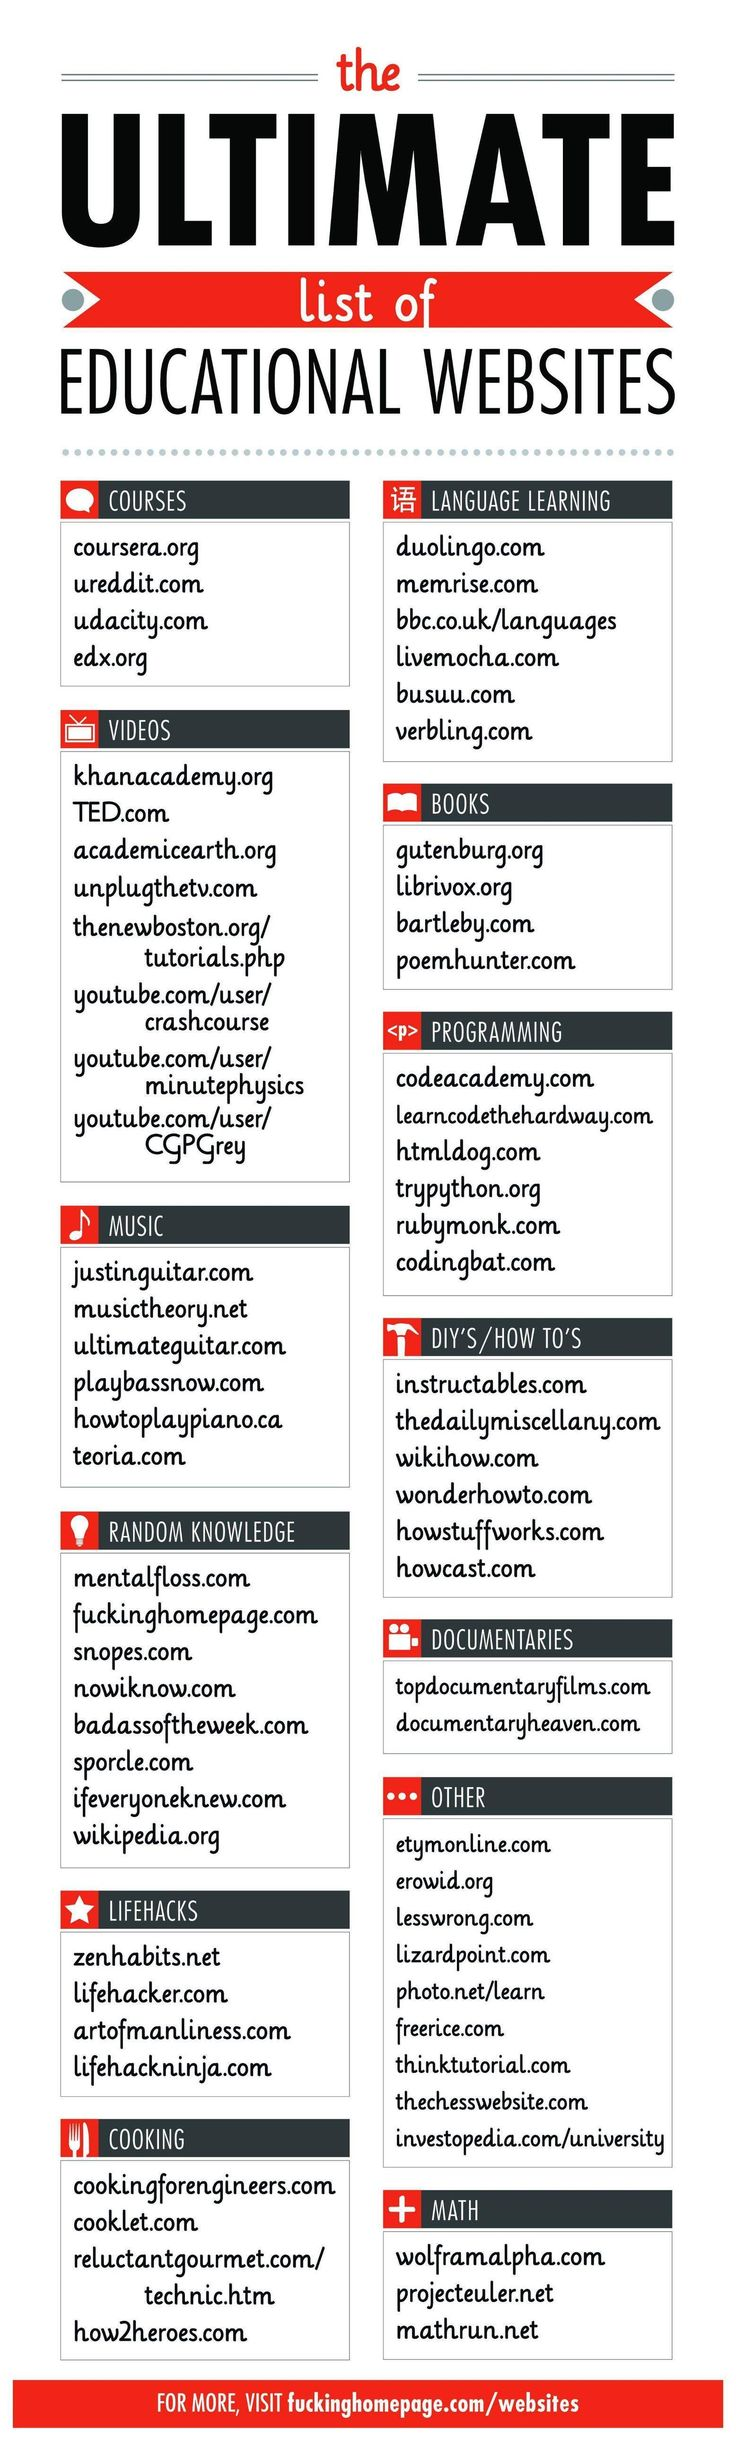 Useful websites.